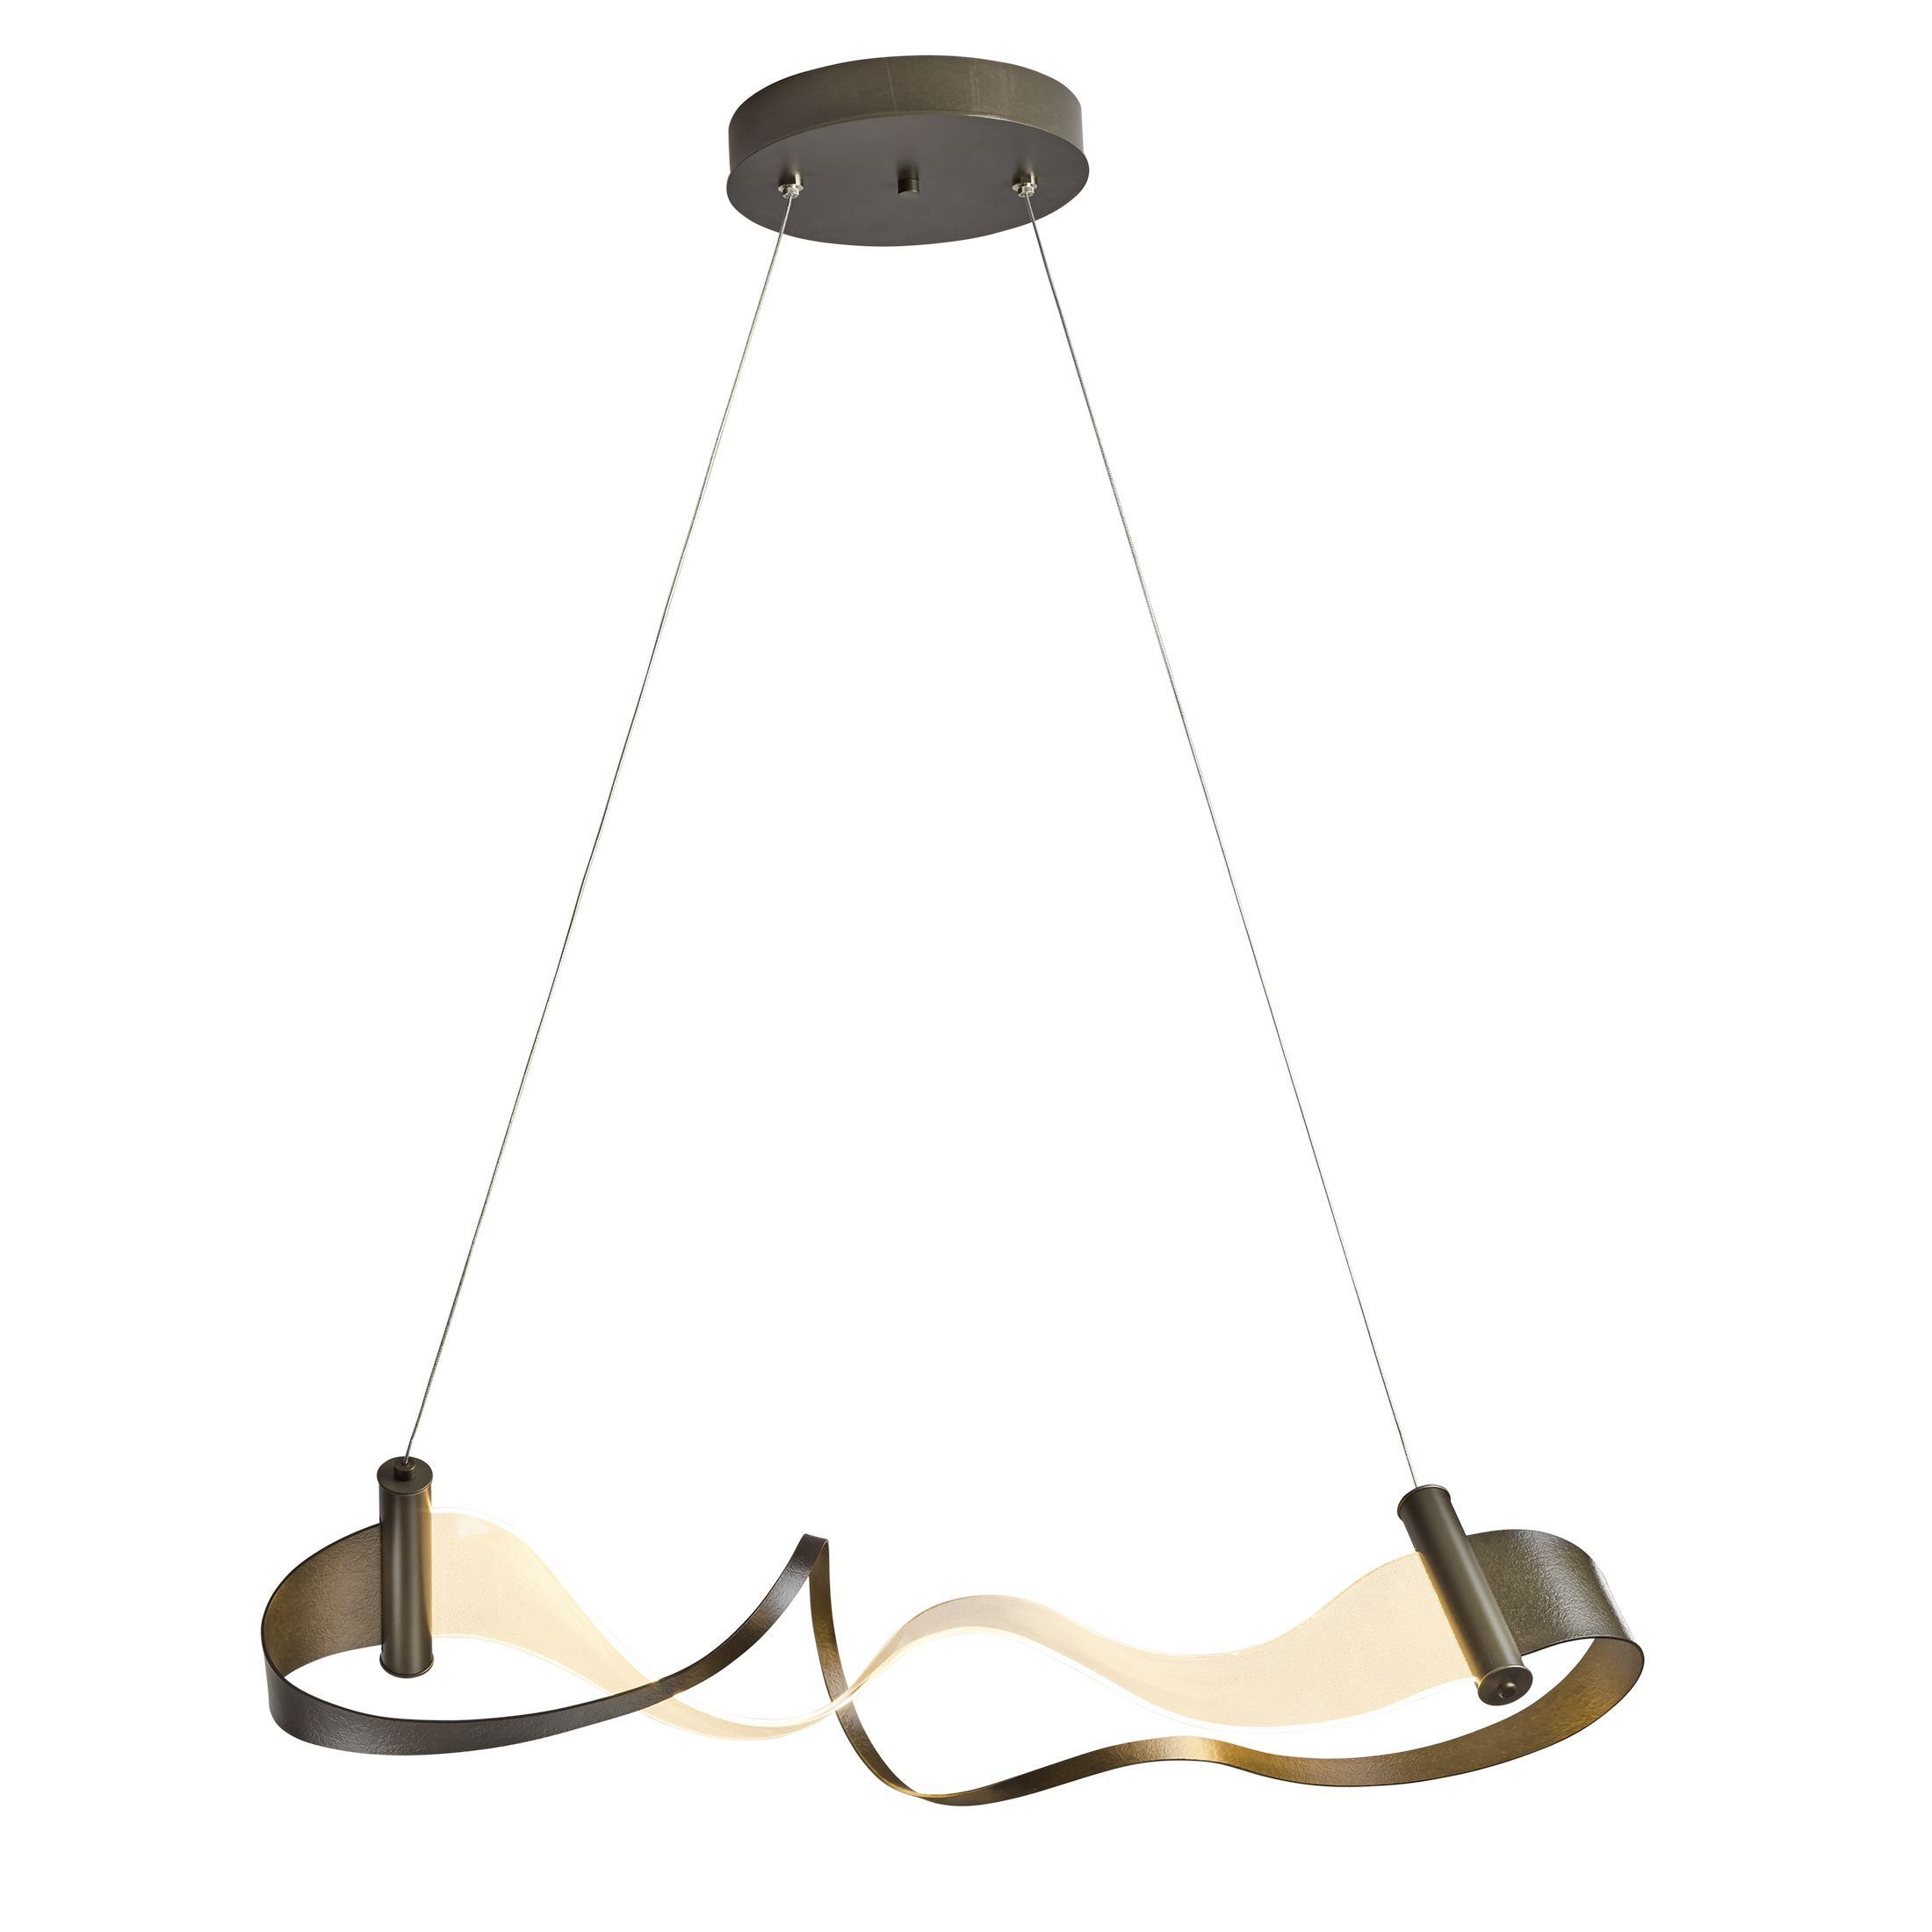 Image result for Zephyr LED Pendant Light